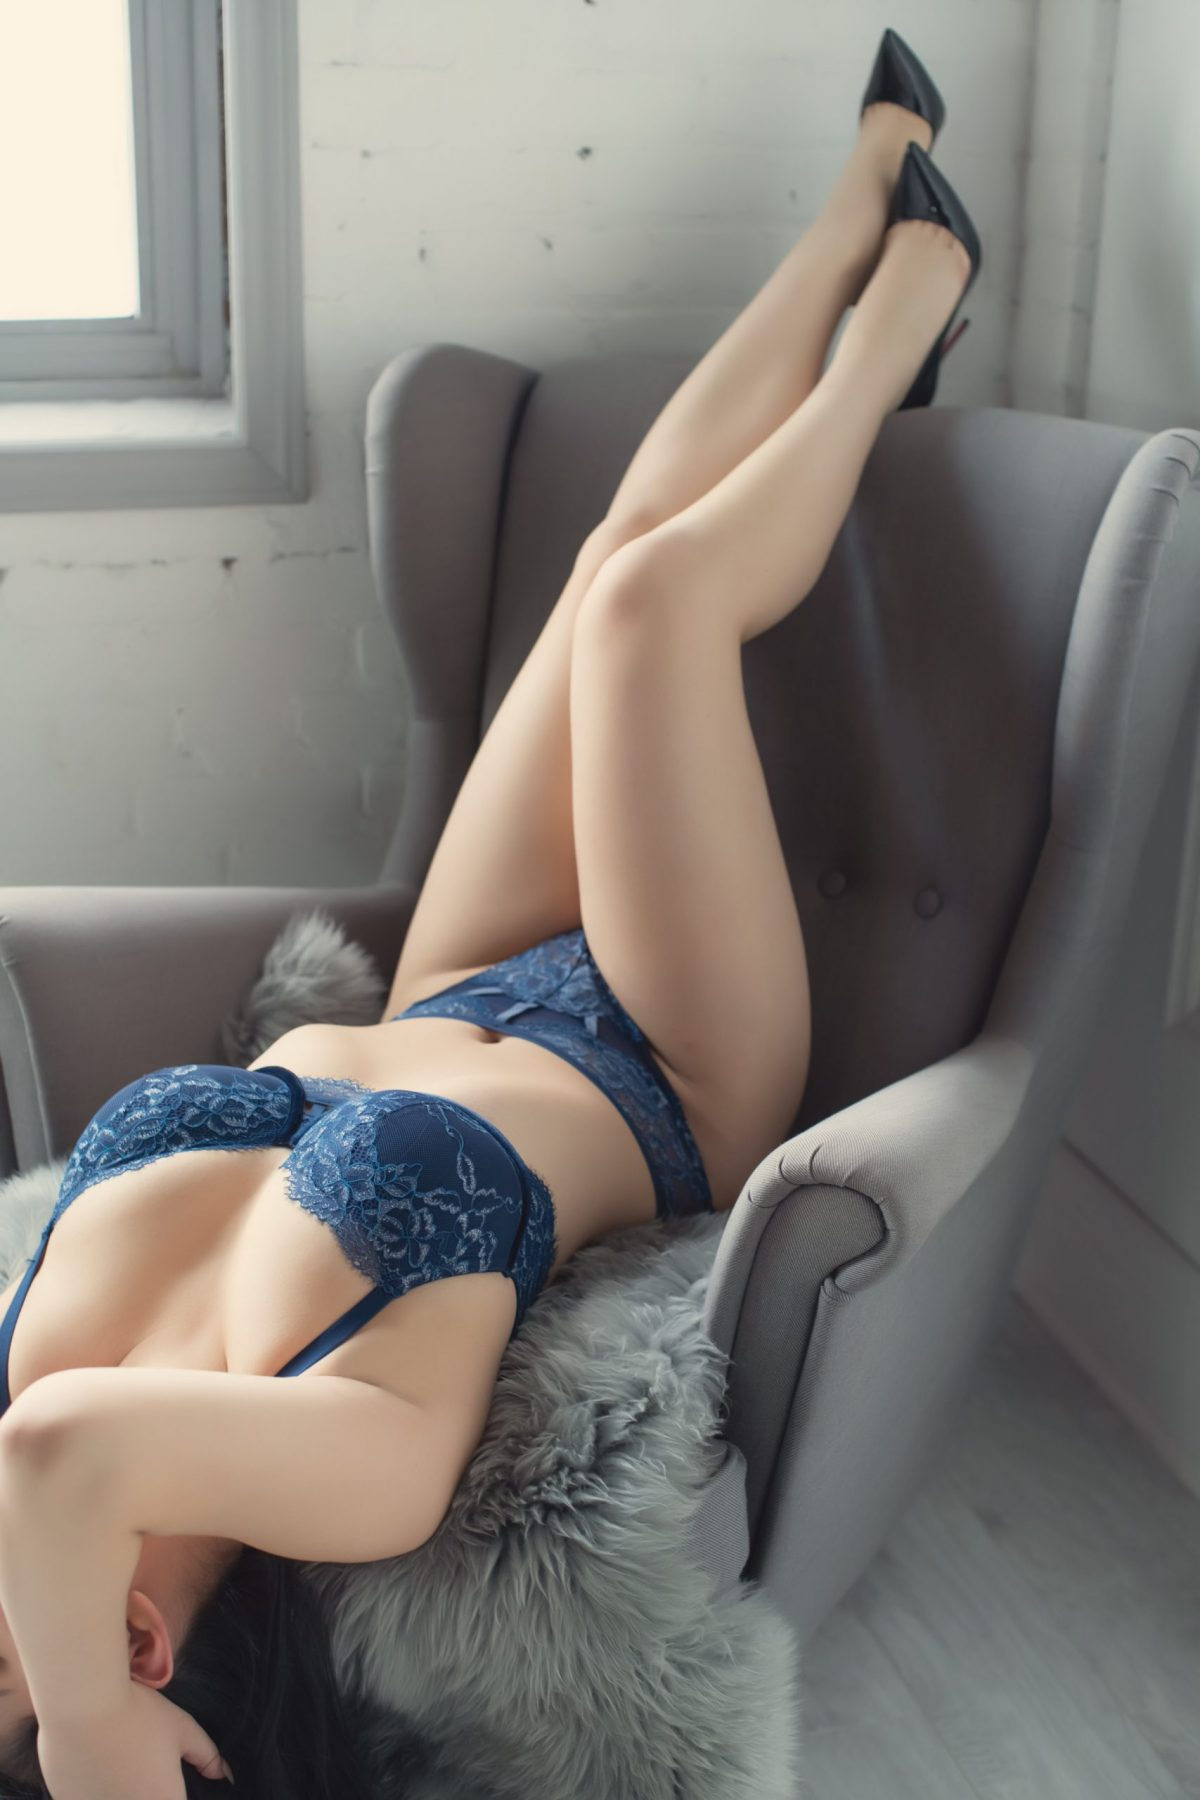 Toronto escorts companion upscale Emily Interests Duo Couple-friendly Non-smoking Age Young Figure Slender Curvy Petite Breasts Enhanced Hair Raven-Haired Ethnicity Asian Tattoos Small Arrival Video